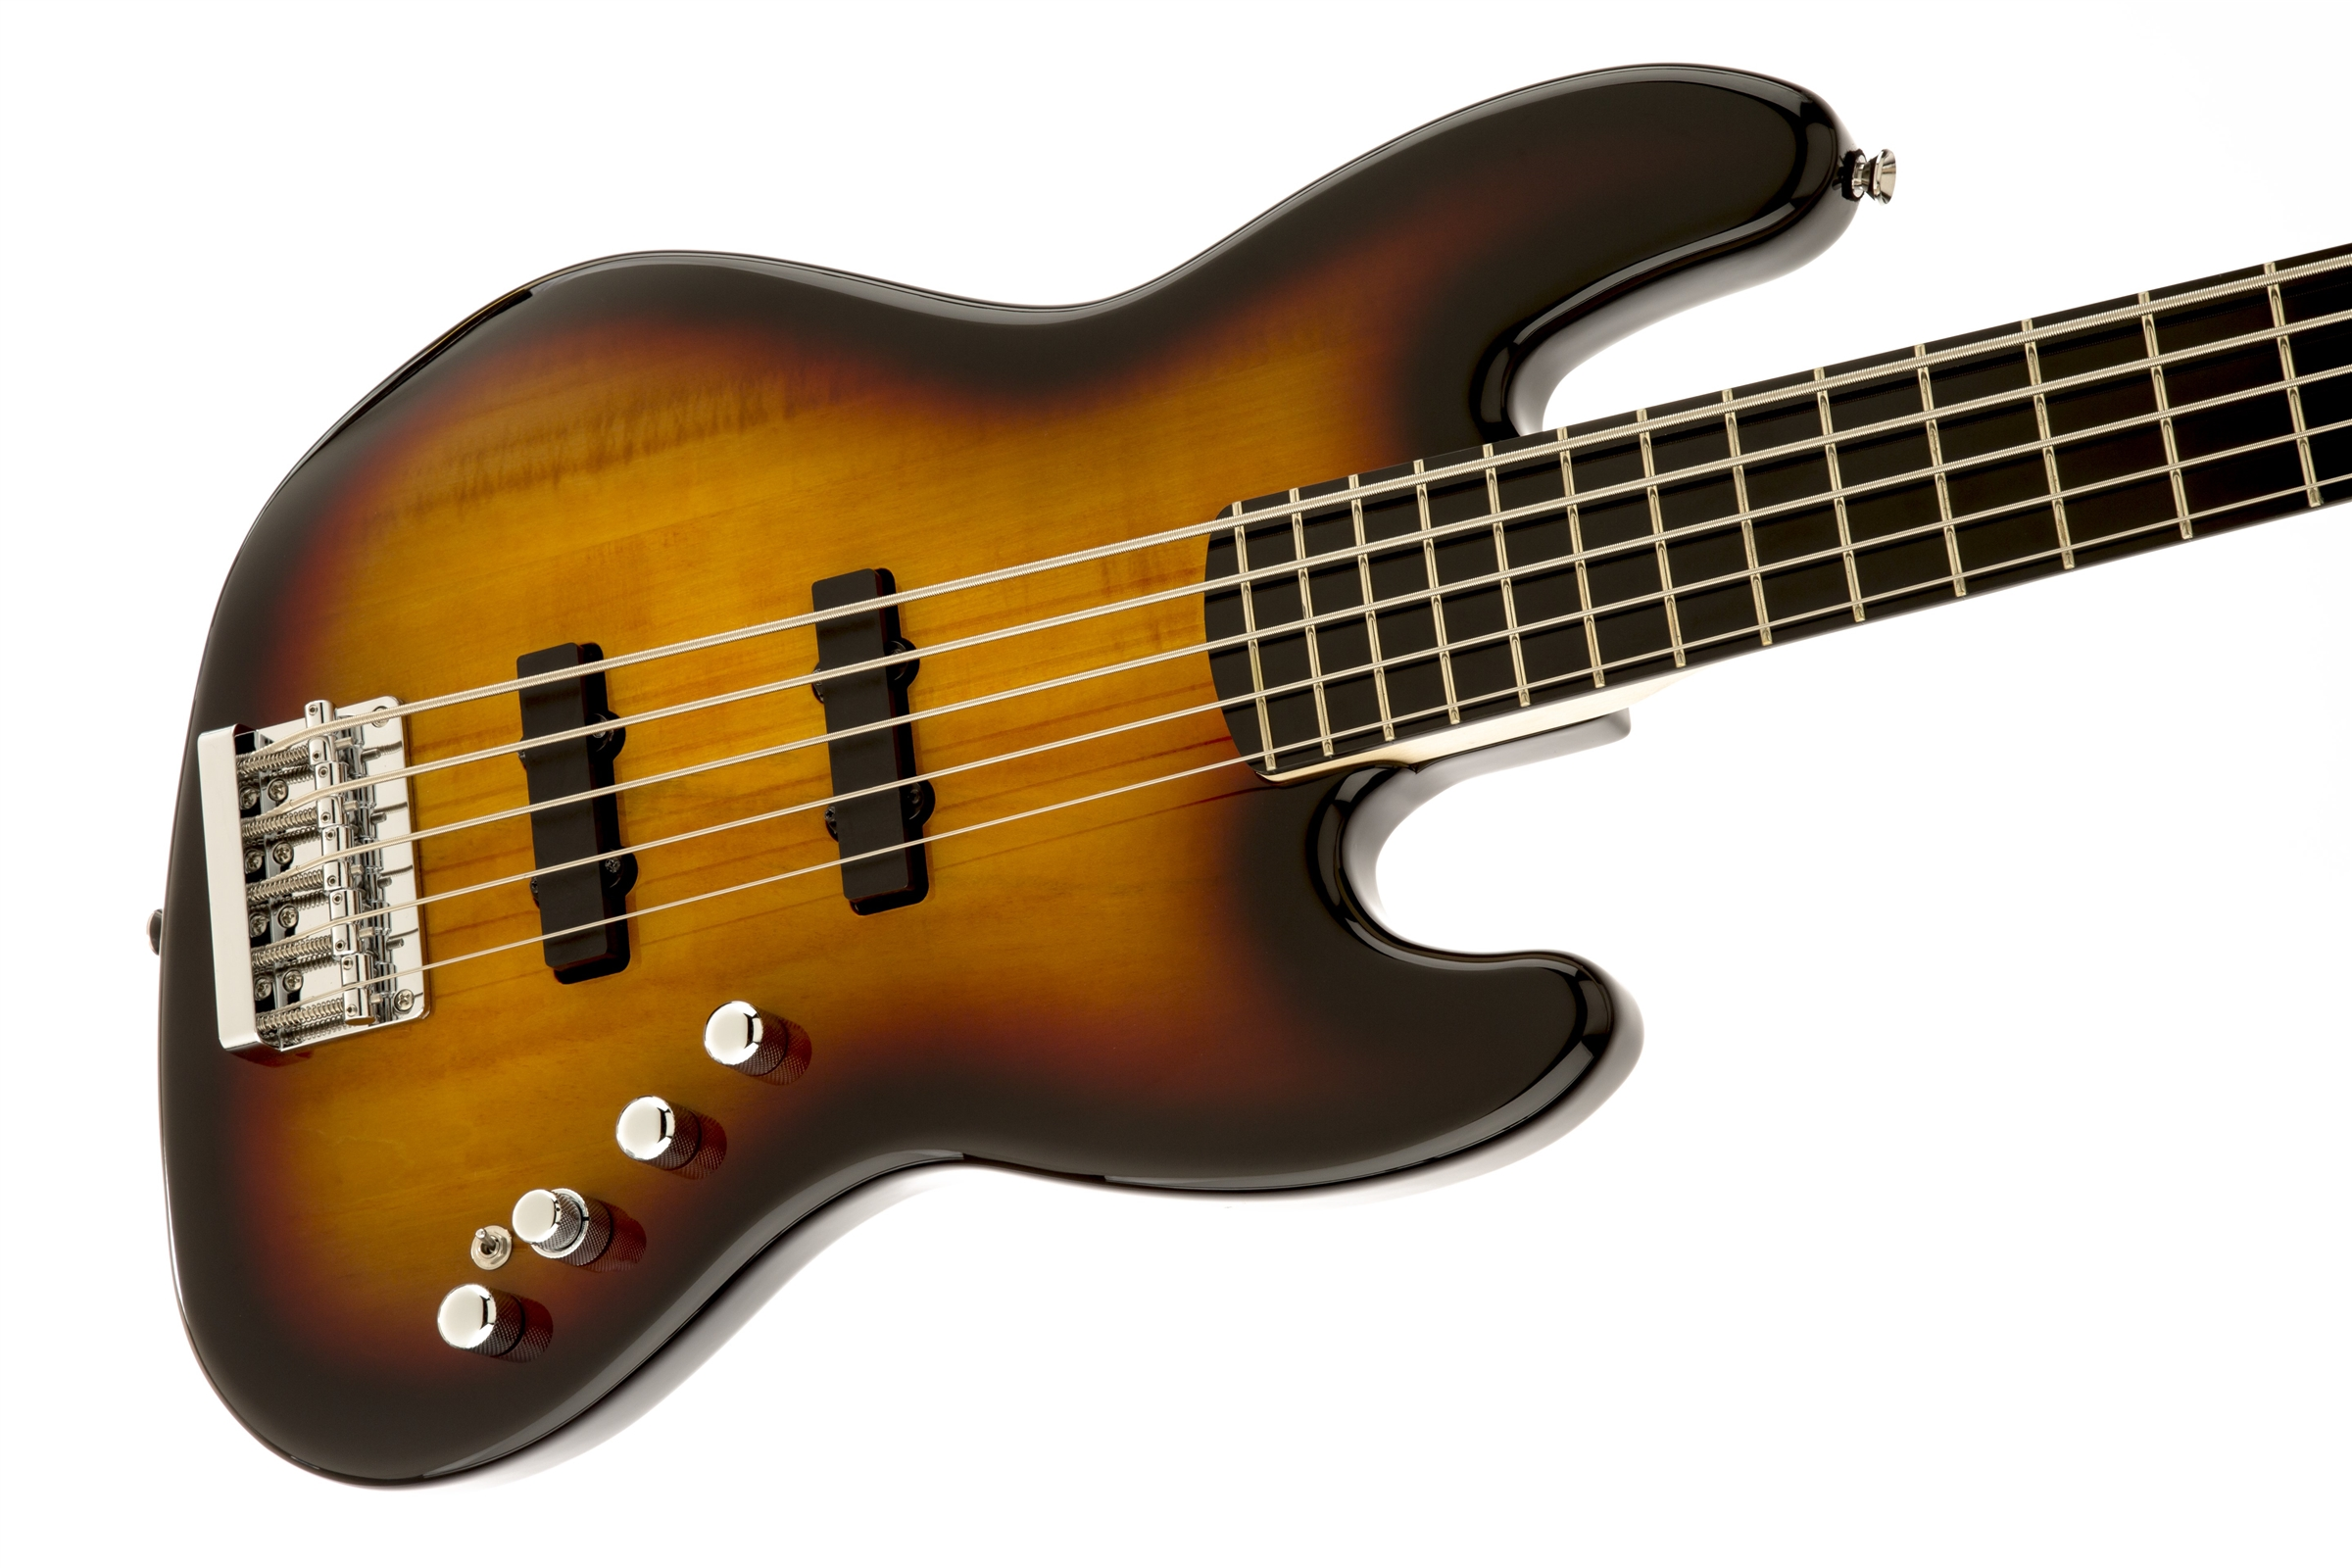 fender squier bass wiring diagram mcdonnell miller low water cutoff squier® deluxe jazz bass® v active (5 string), ebonol fingerboard, 3-color sunburst | ...